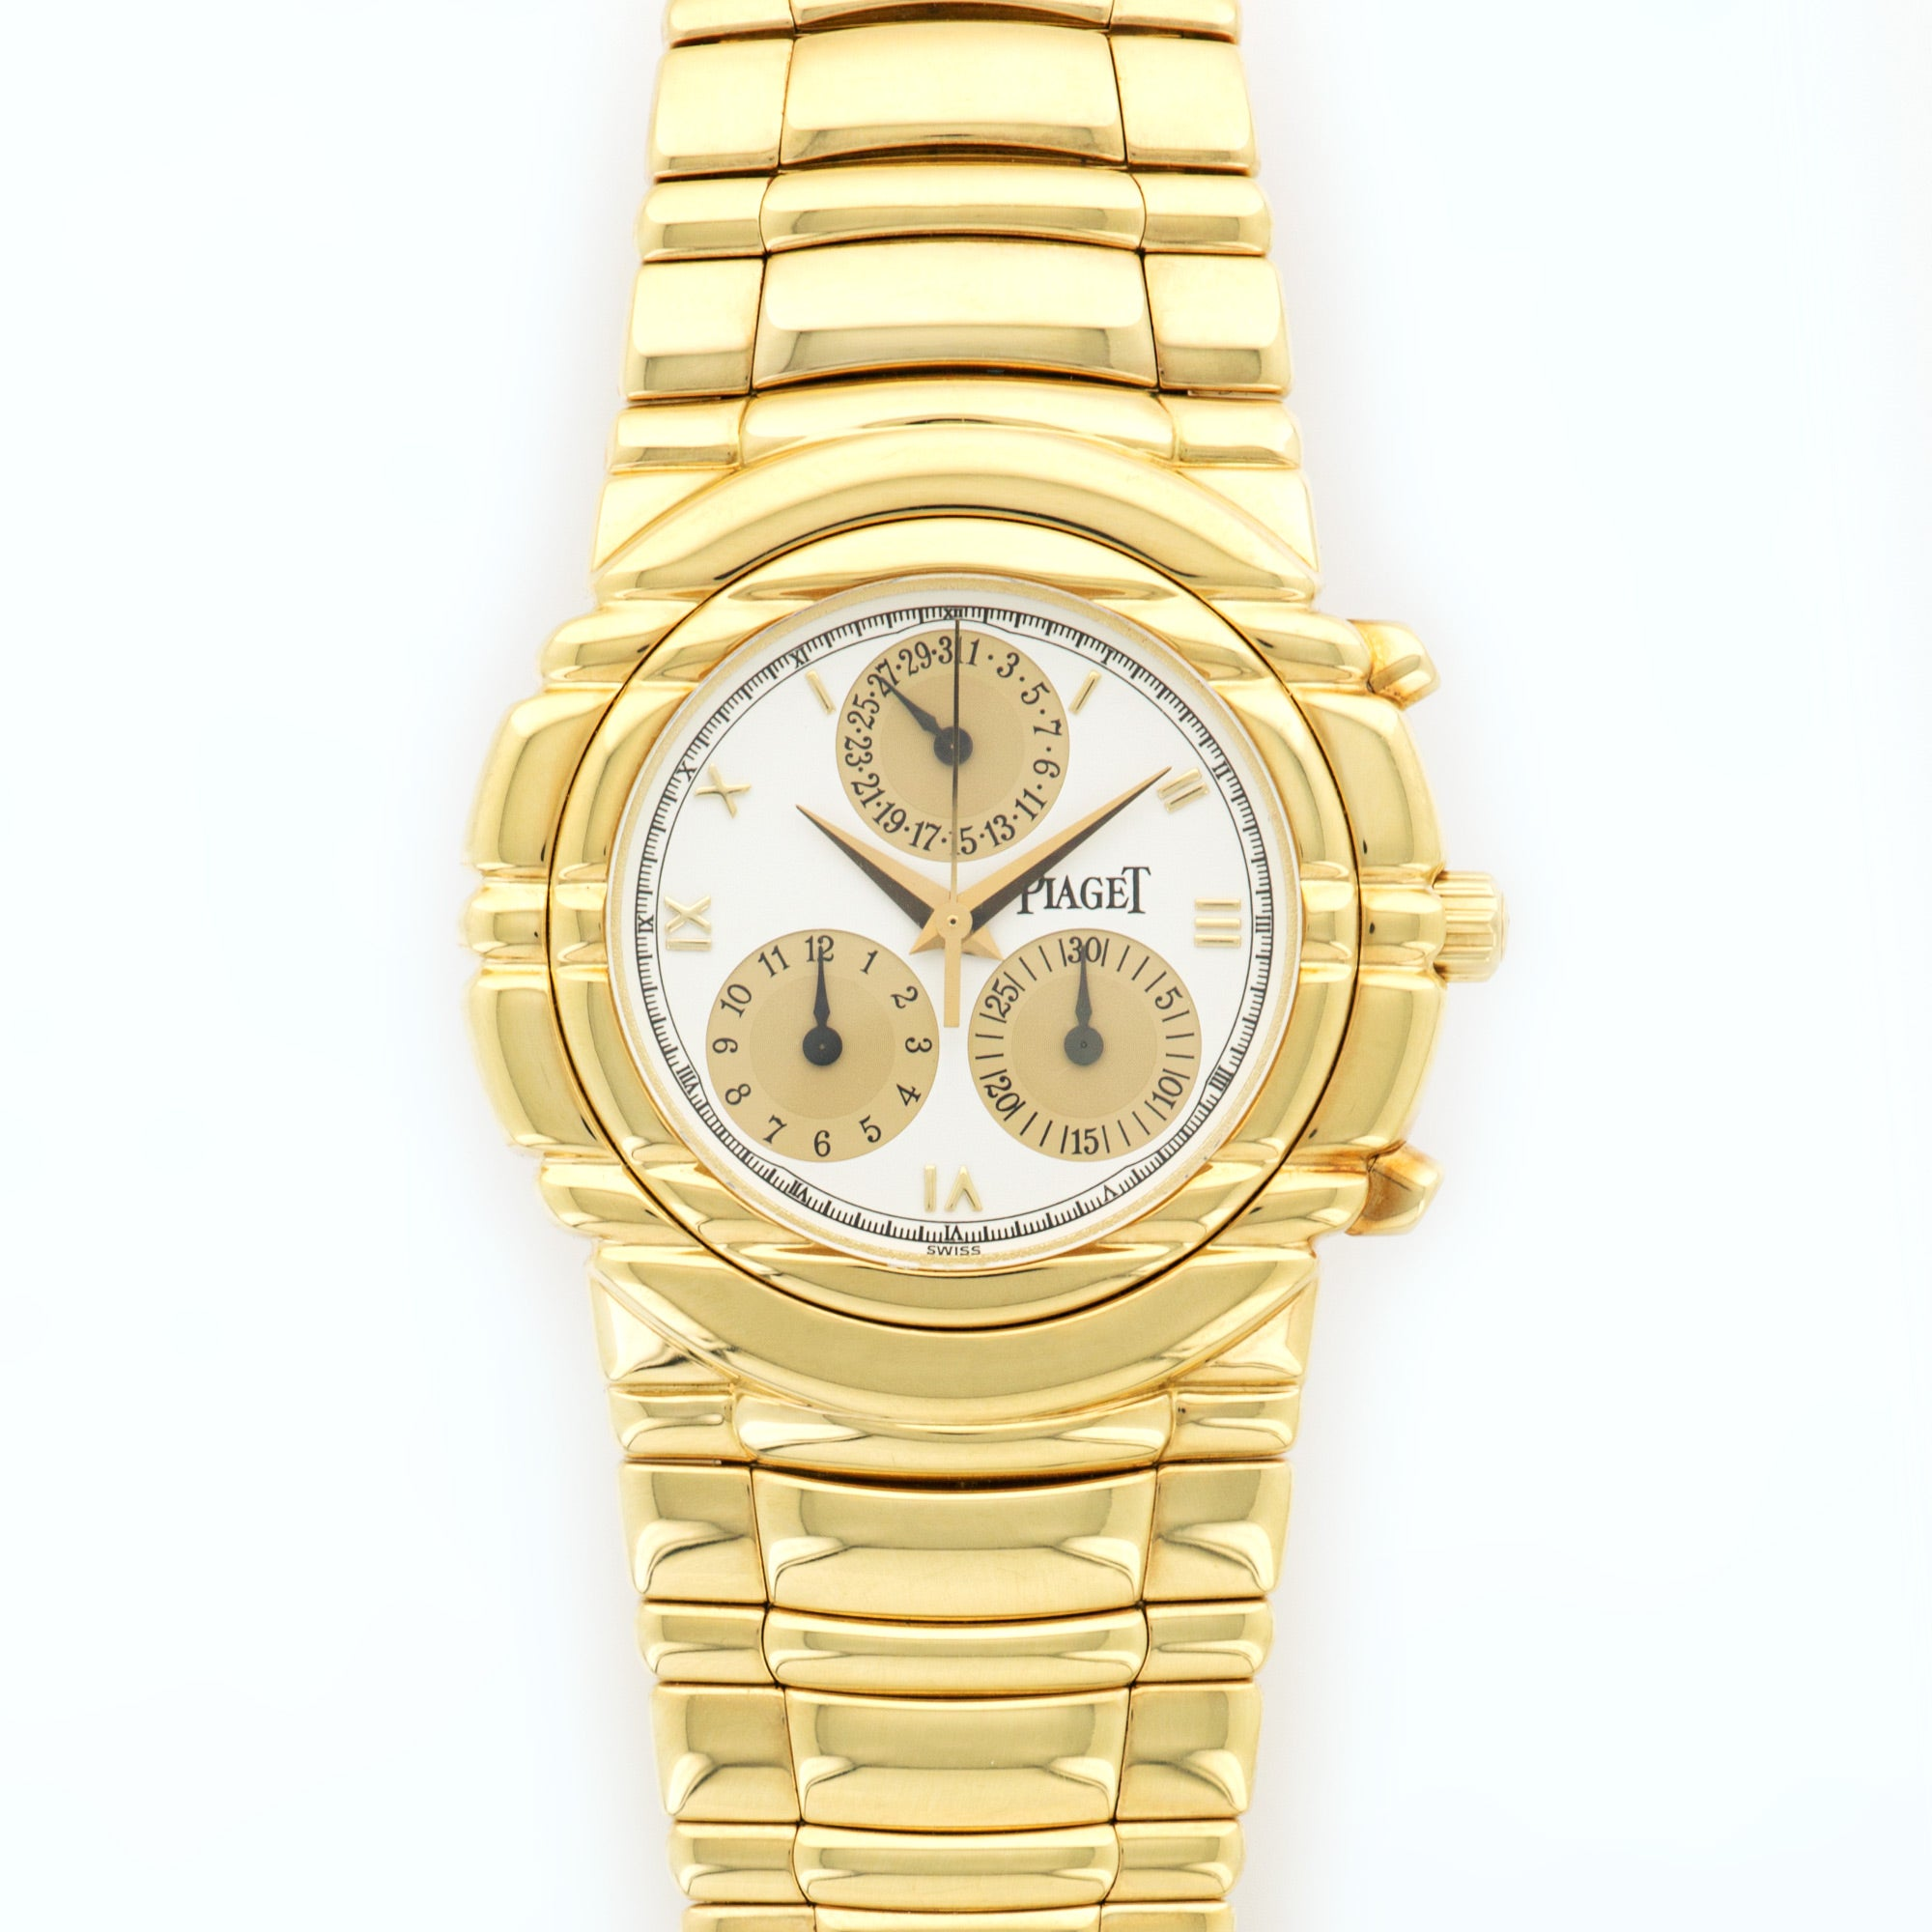 Piaget Tanagra 14081 18k YG  Excellent Unisex 18k YG White with Gold Subdials 35mm Manual 1990s Yellow Gold Bracelet (6 3/4) N/A